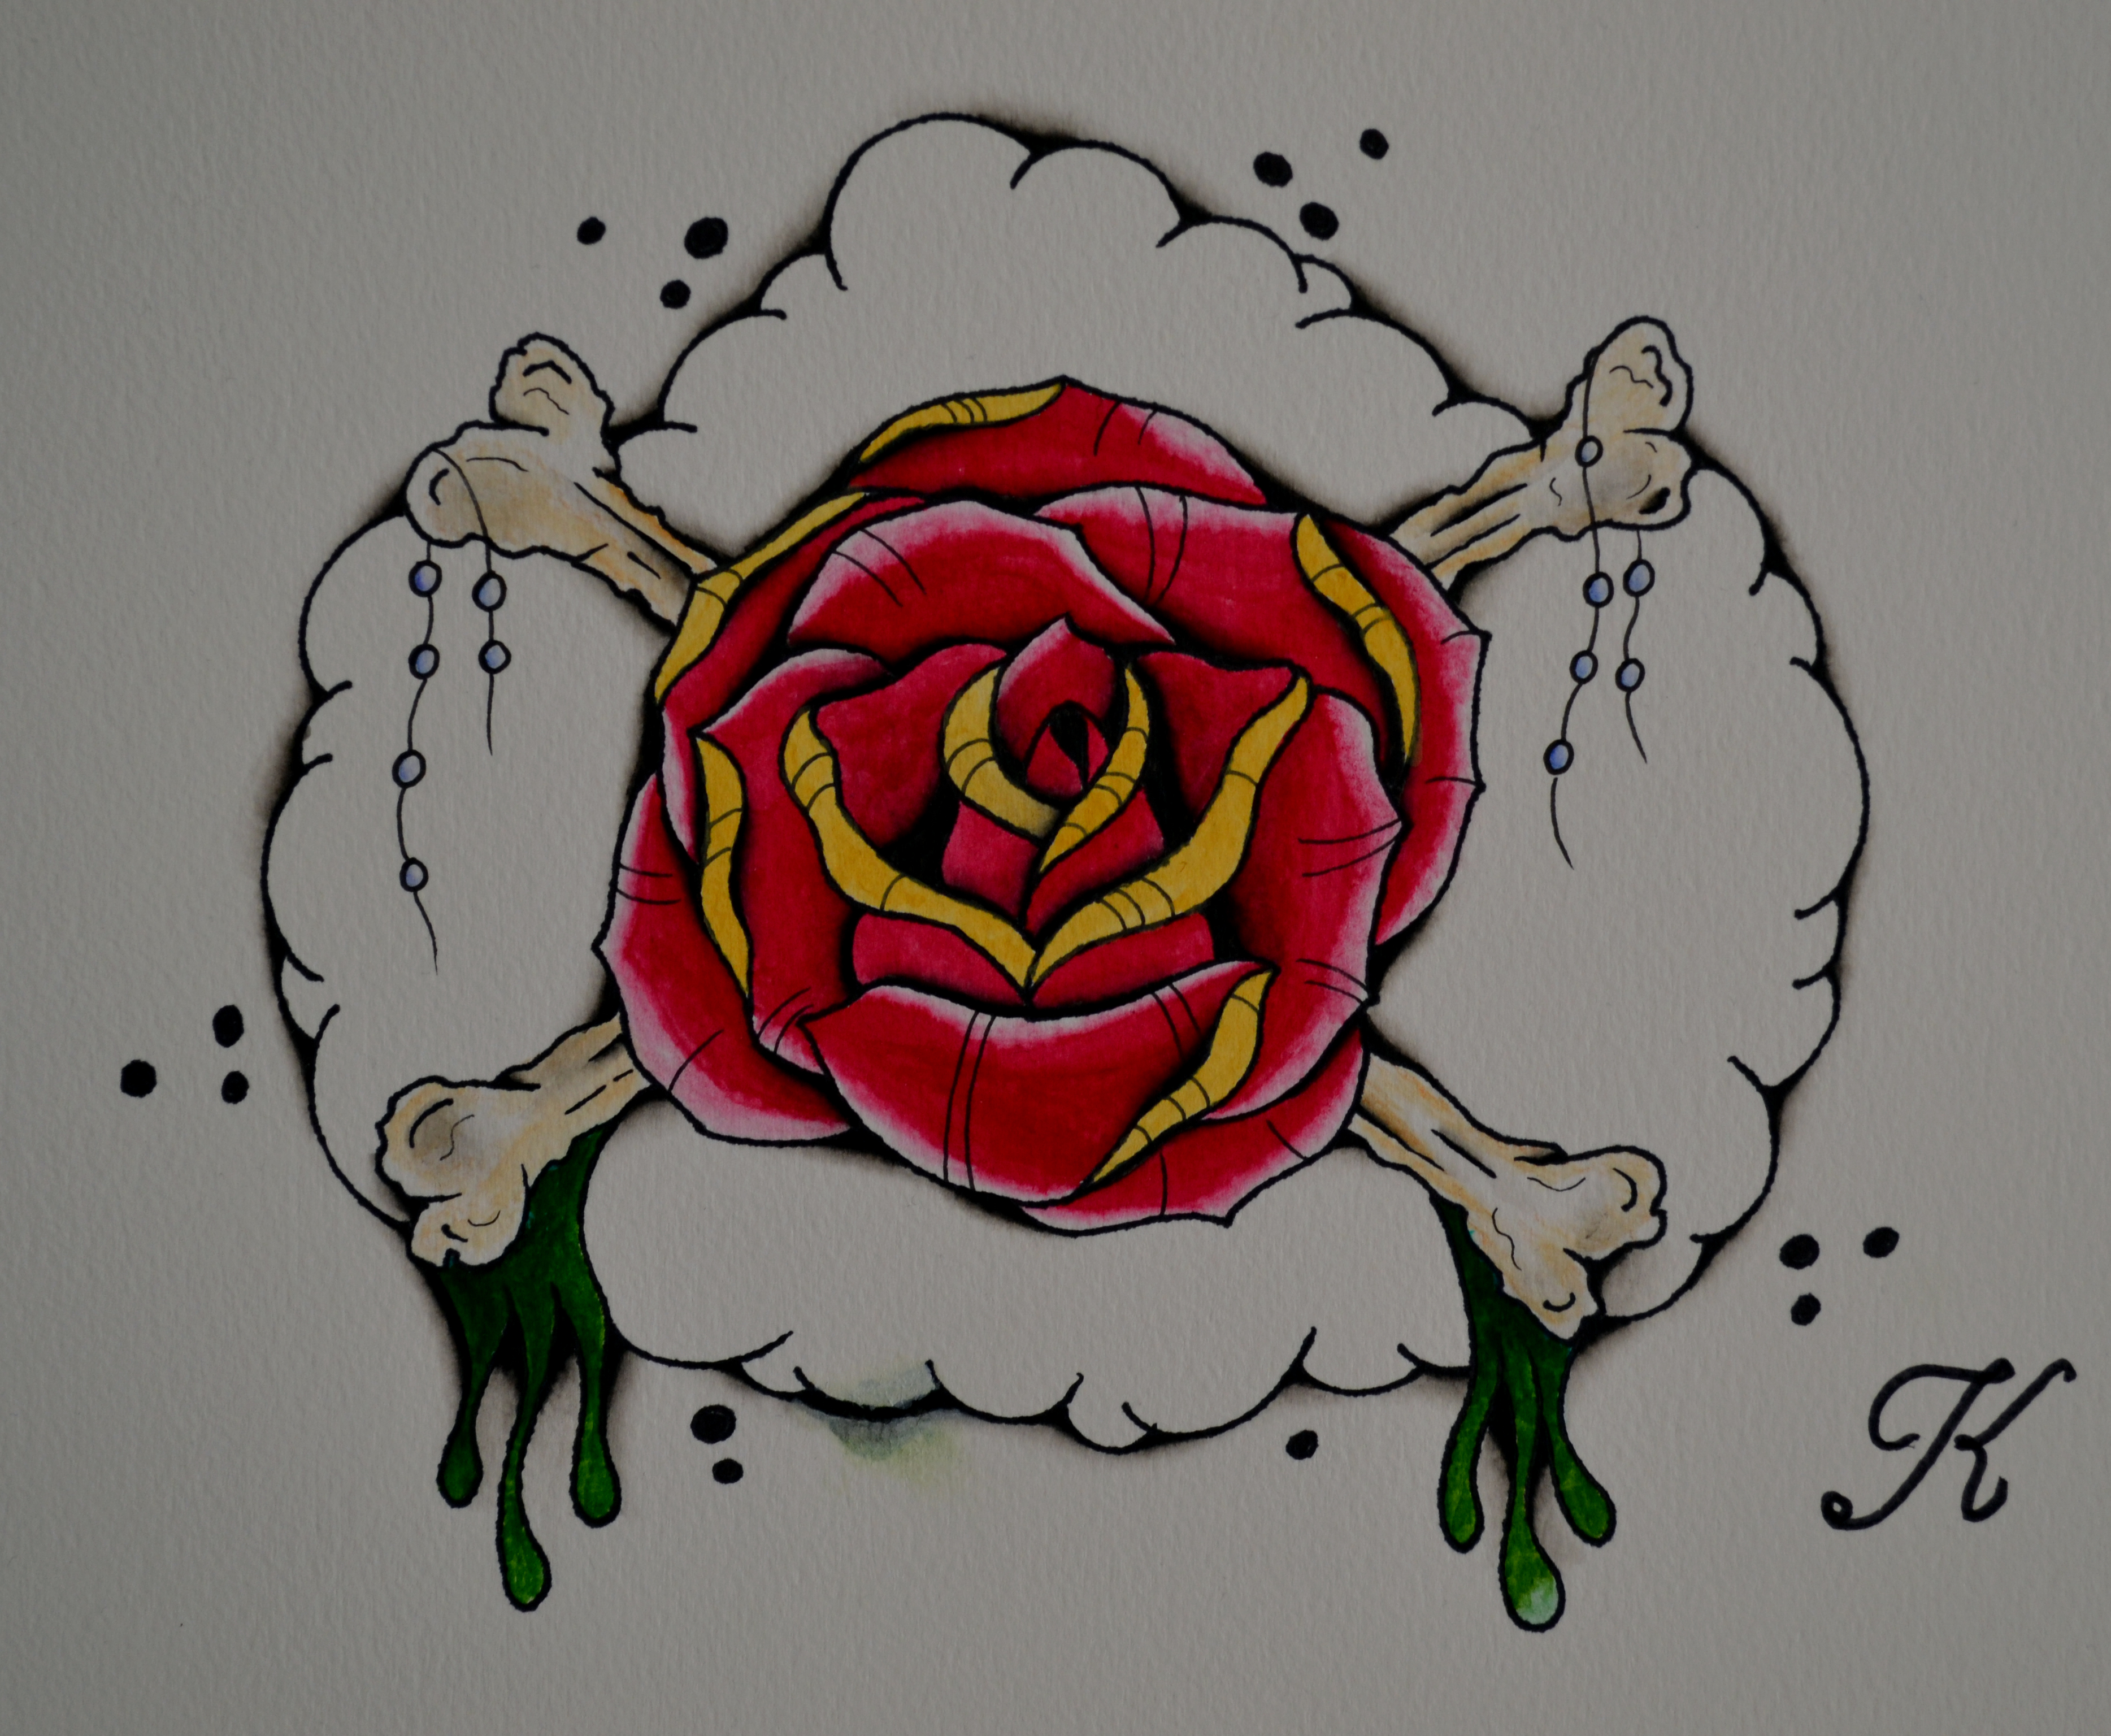 Neo traditional rose and bones by beyondedge on deviantart for Neo traditional rose tattoo